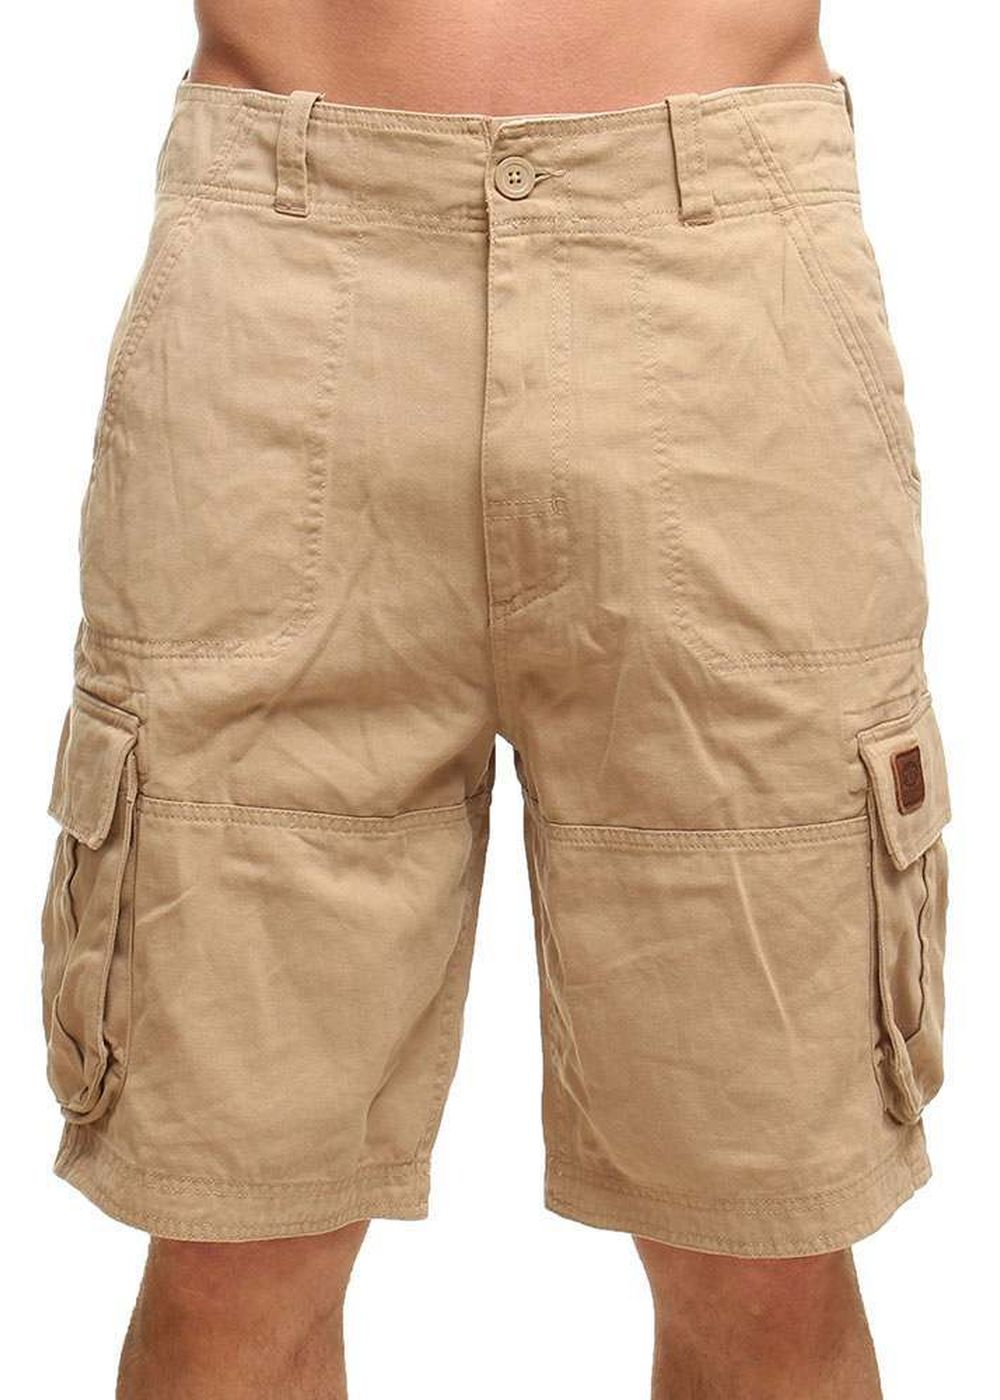 ANIMAL AGOURAS CARGO SHORTS Beige